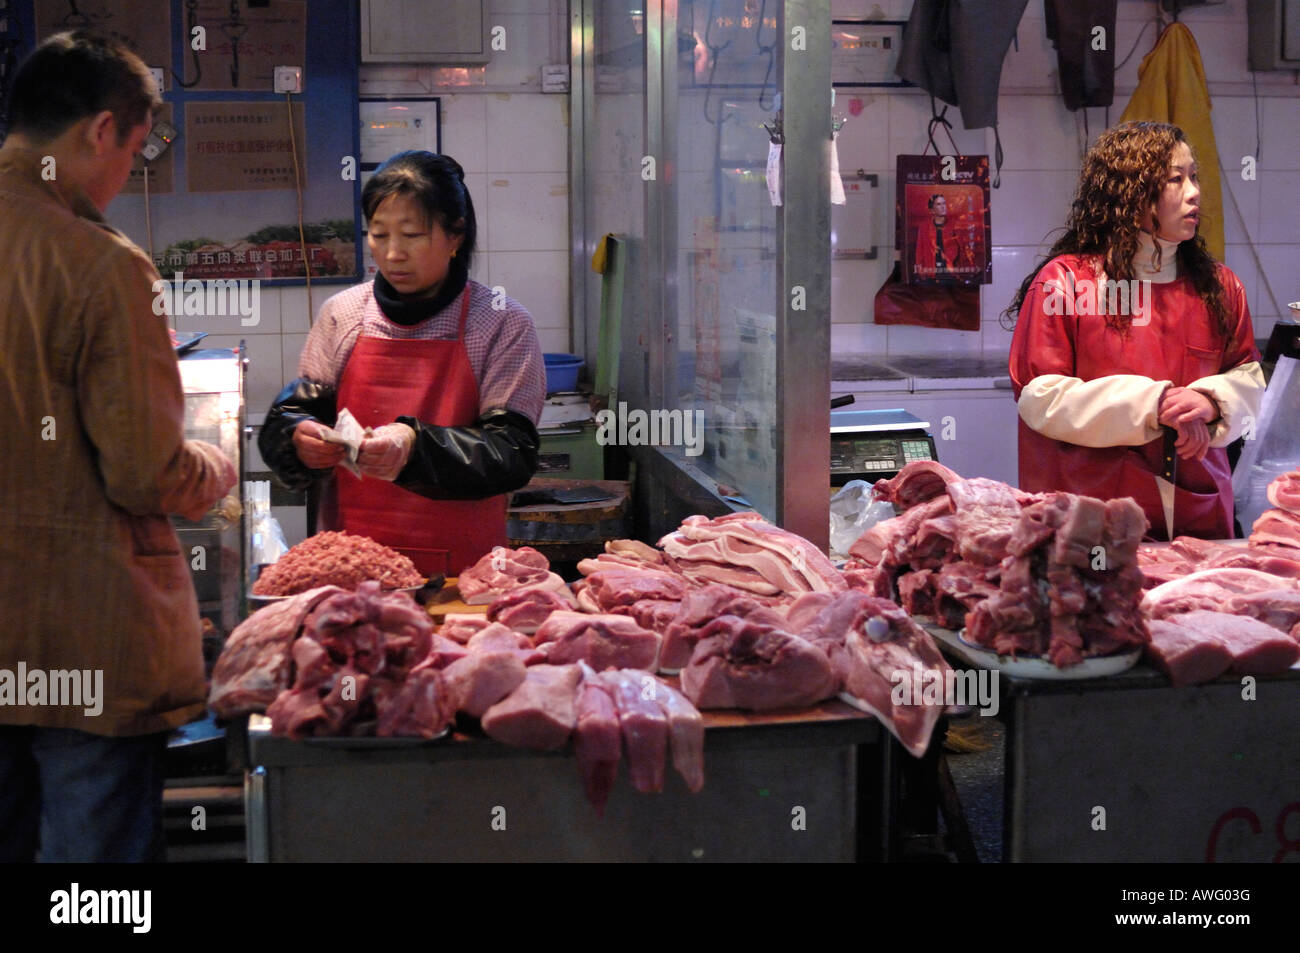 A vendor sells pork at her stall in a free market in Beijing China. 12 Mar 2008 - Stock Image